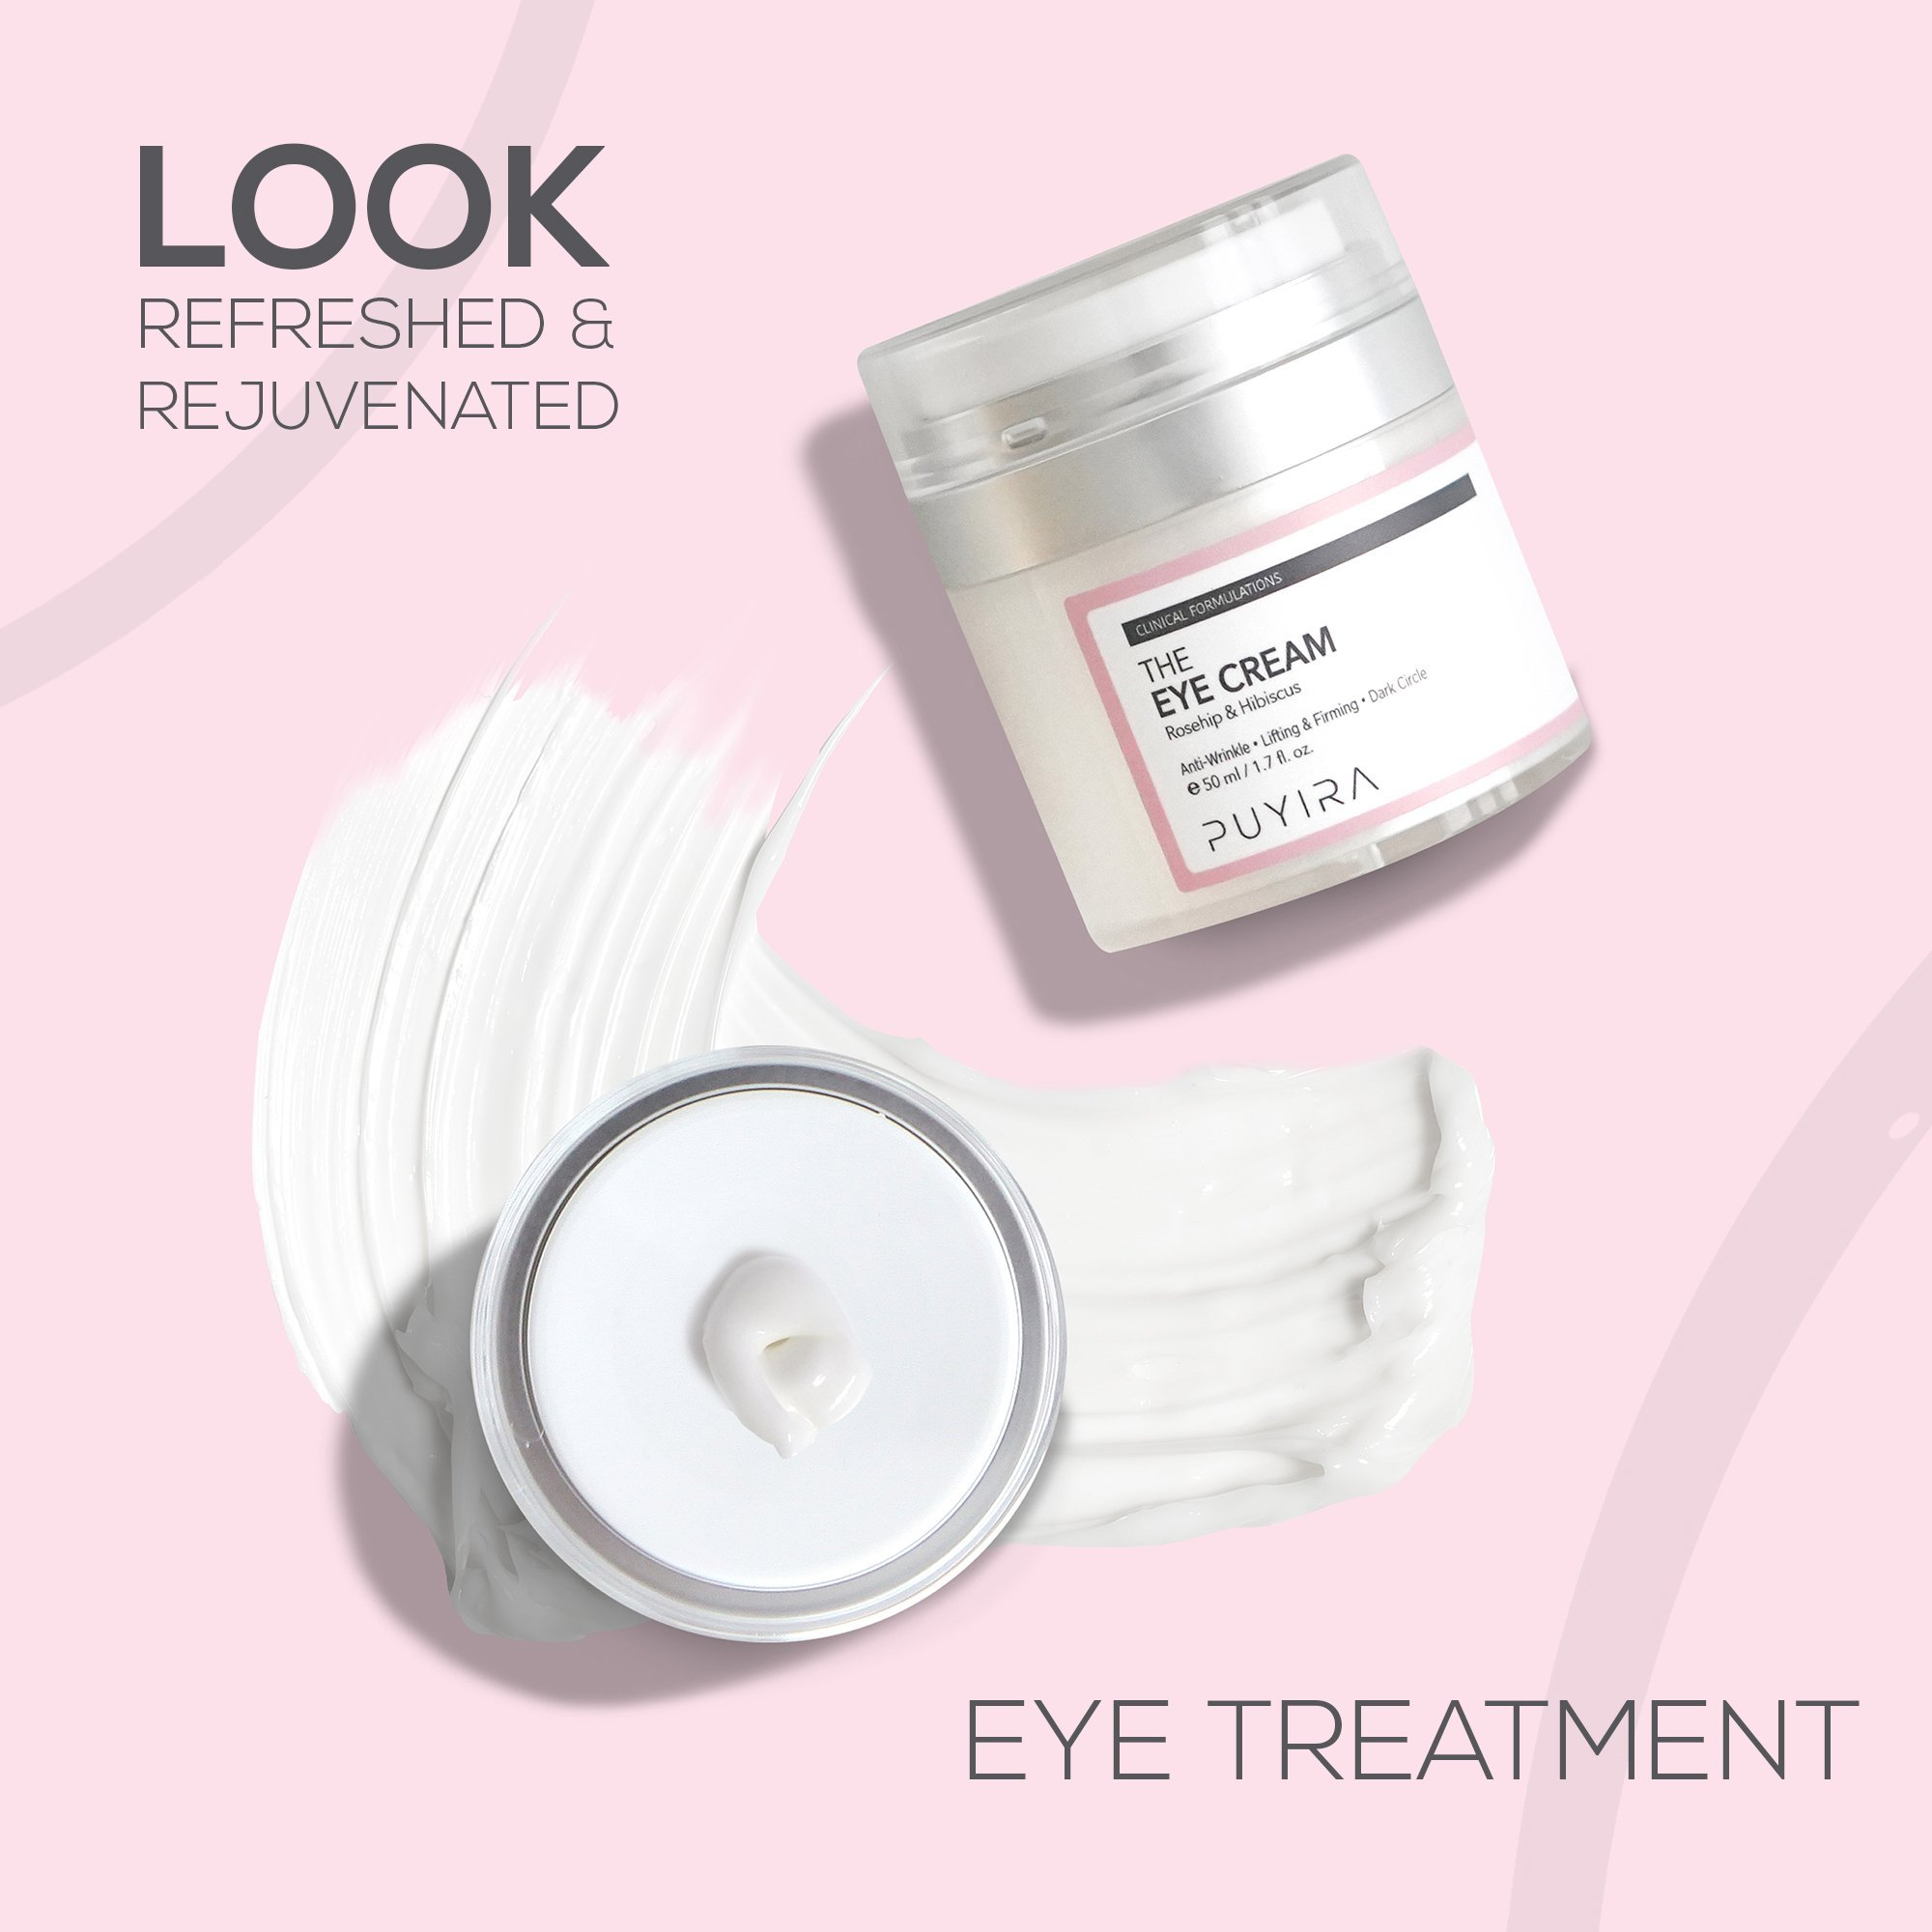 PUYIRA Rosehip Eye Cream Moisturizer , 1.7 fl.oz - Reducing Puffiness and Bags, Erasing Fine Lines and Wrinkles, Brightening Dark Circles by PUYIRA (Image #4)